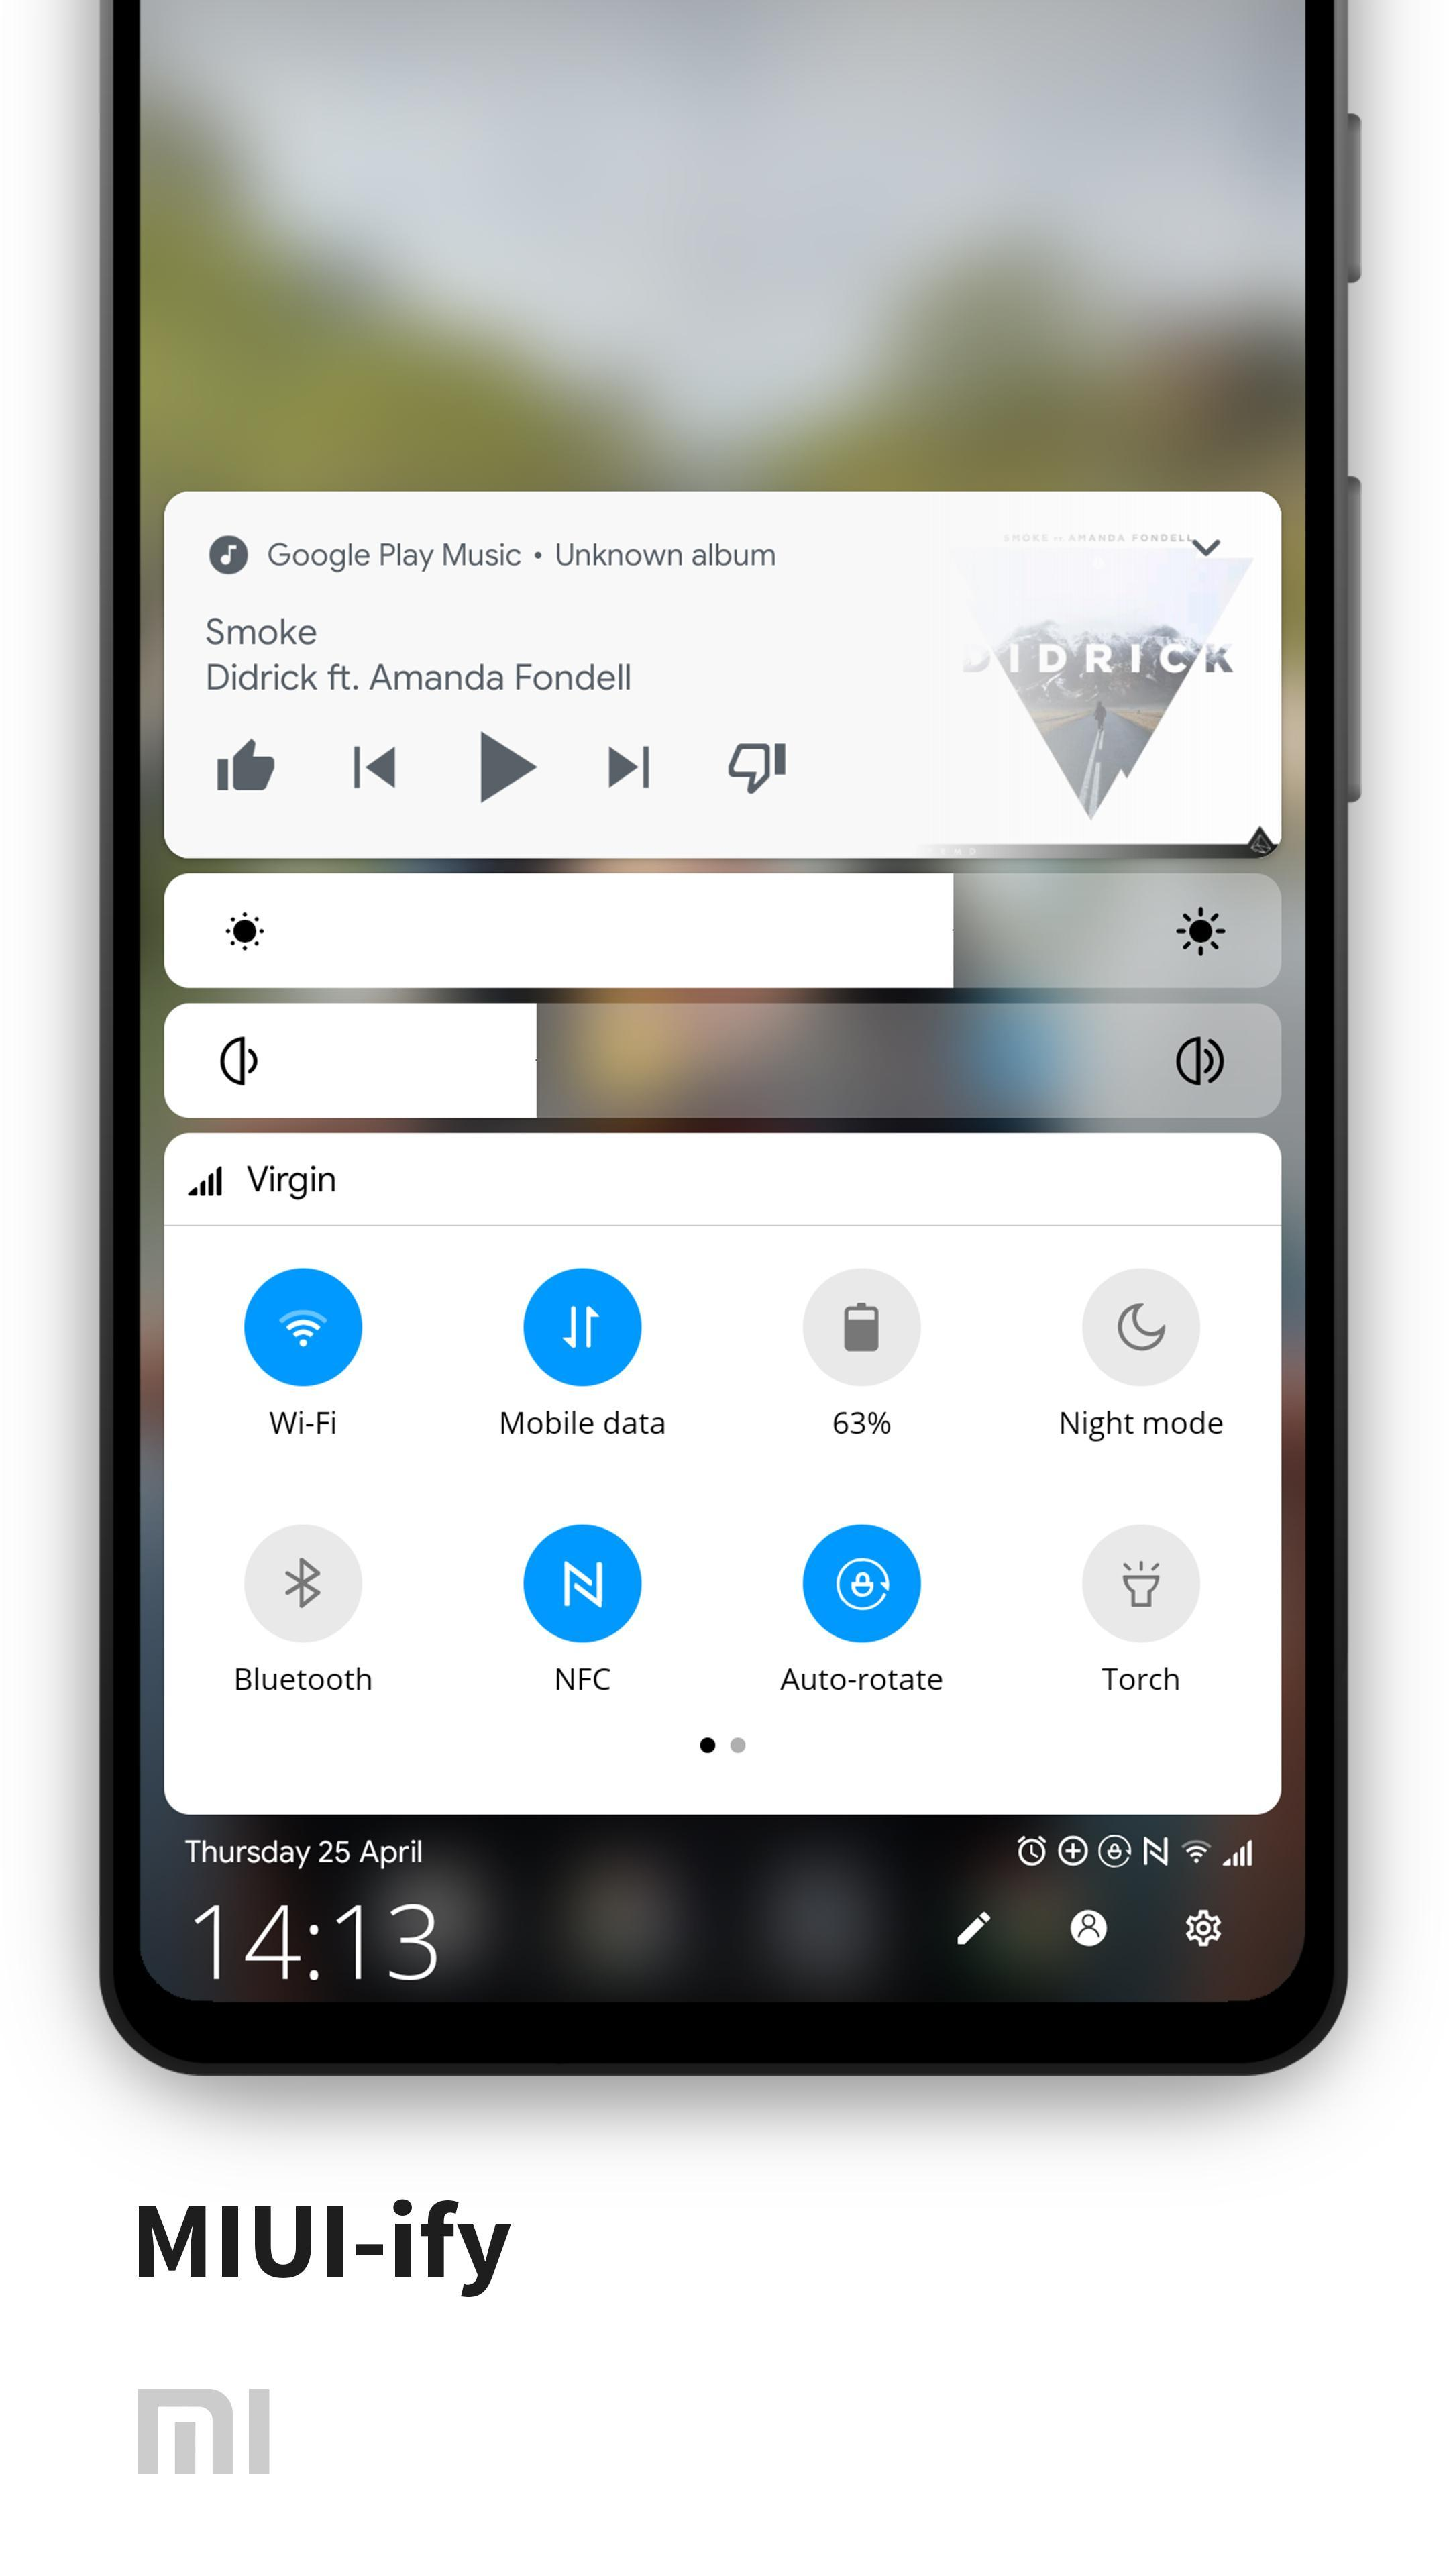 MIUI-ify for Android - APK Download